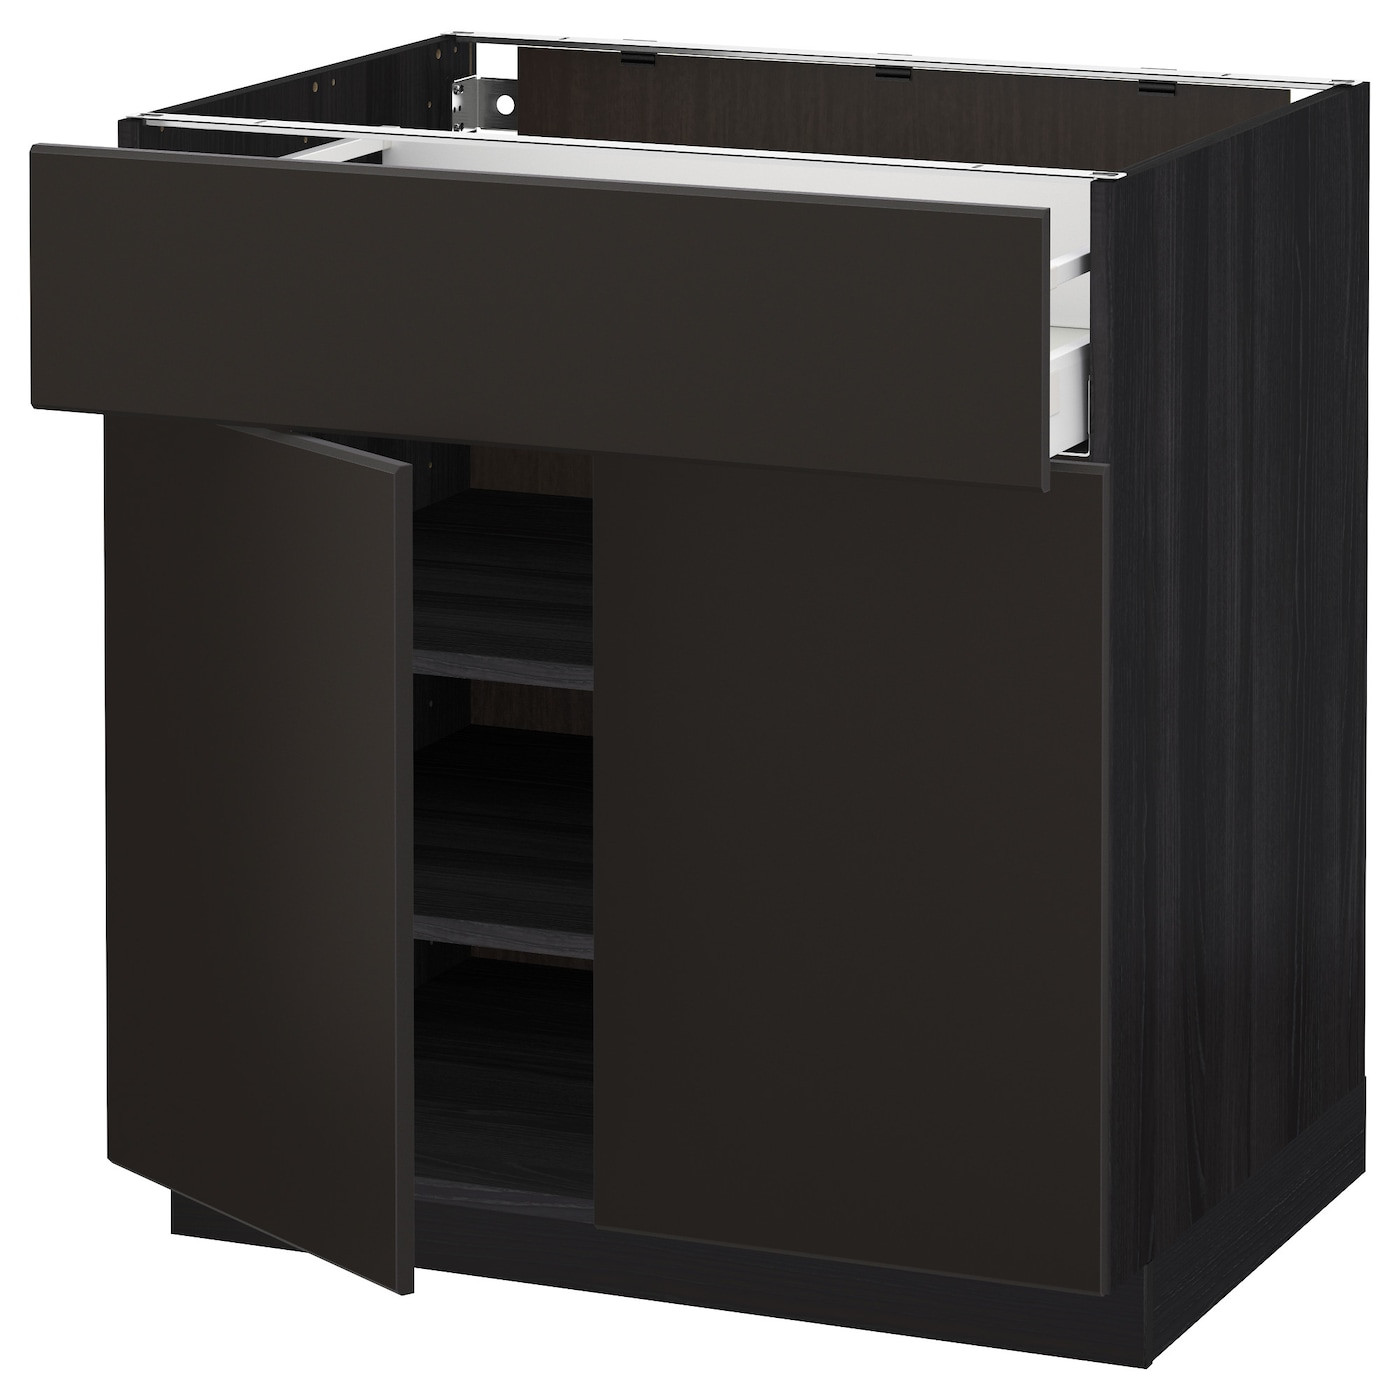 Ikea Kitchen Black Cabinets: METOD/MAXIMERA Base Cabinet With Drawer/2 Doors Black/kungsbacka Anthracite 80 X 60 Cm